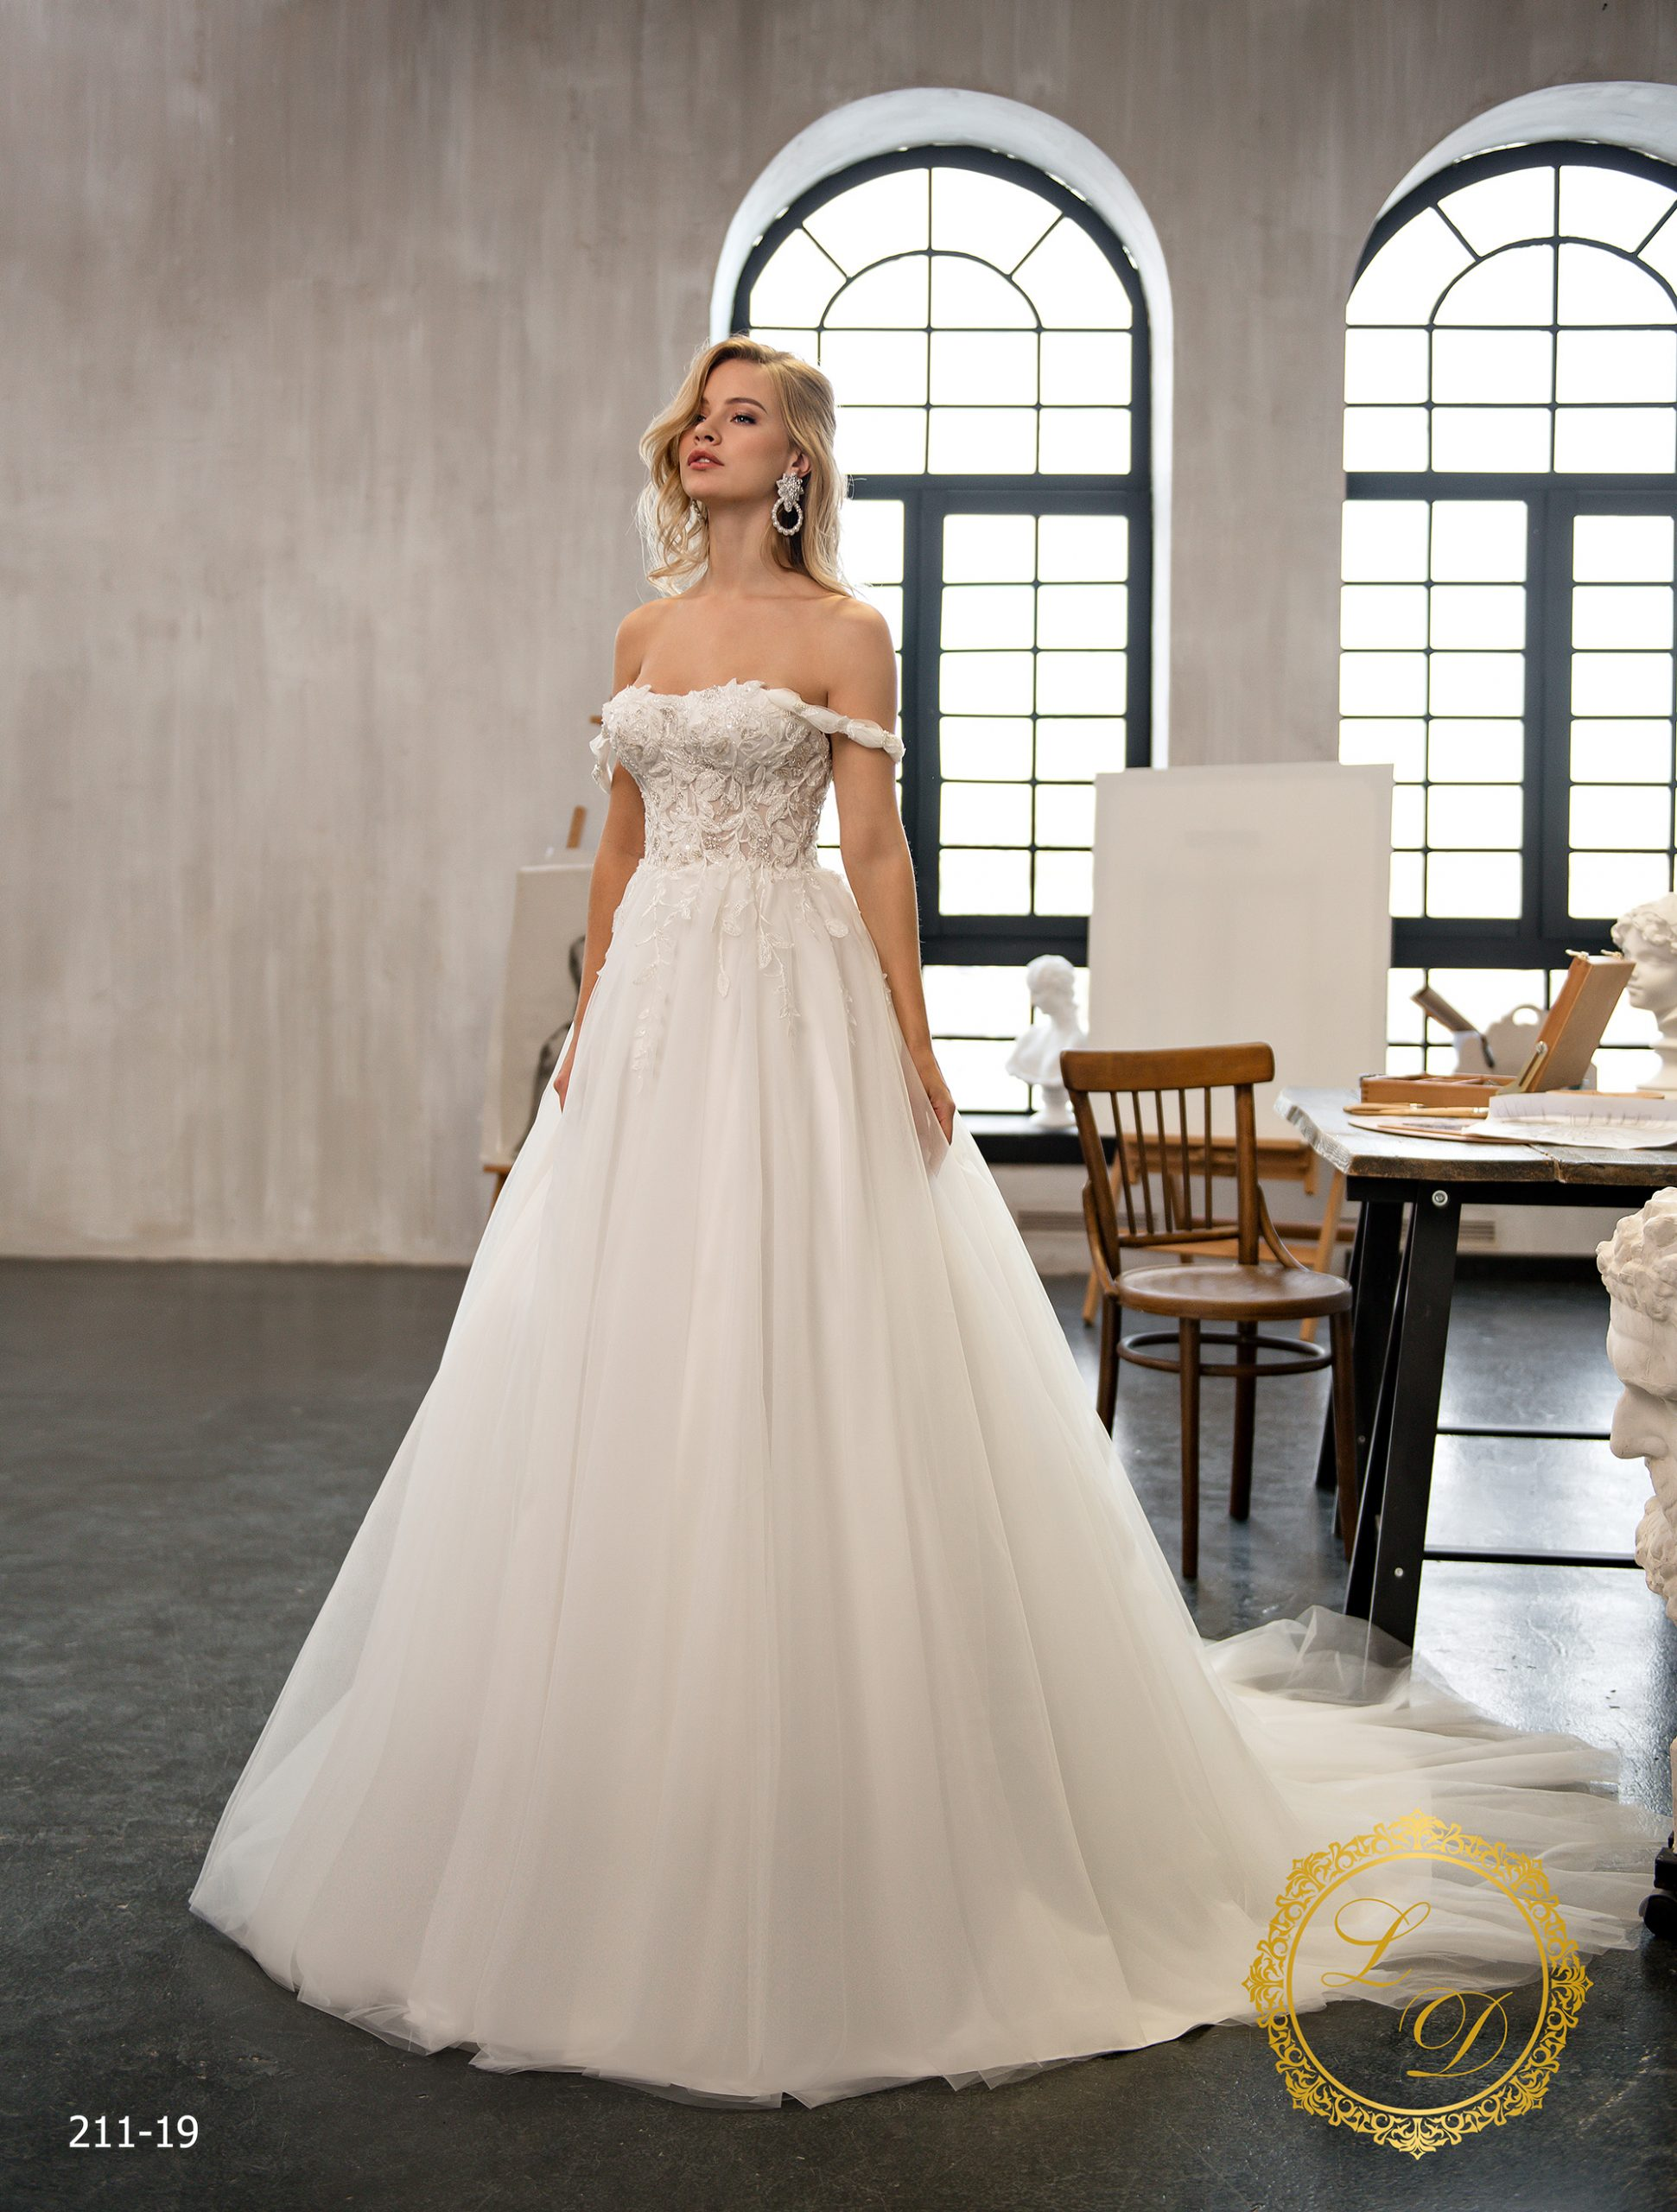 wedding-dress-211-19-1